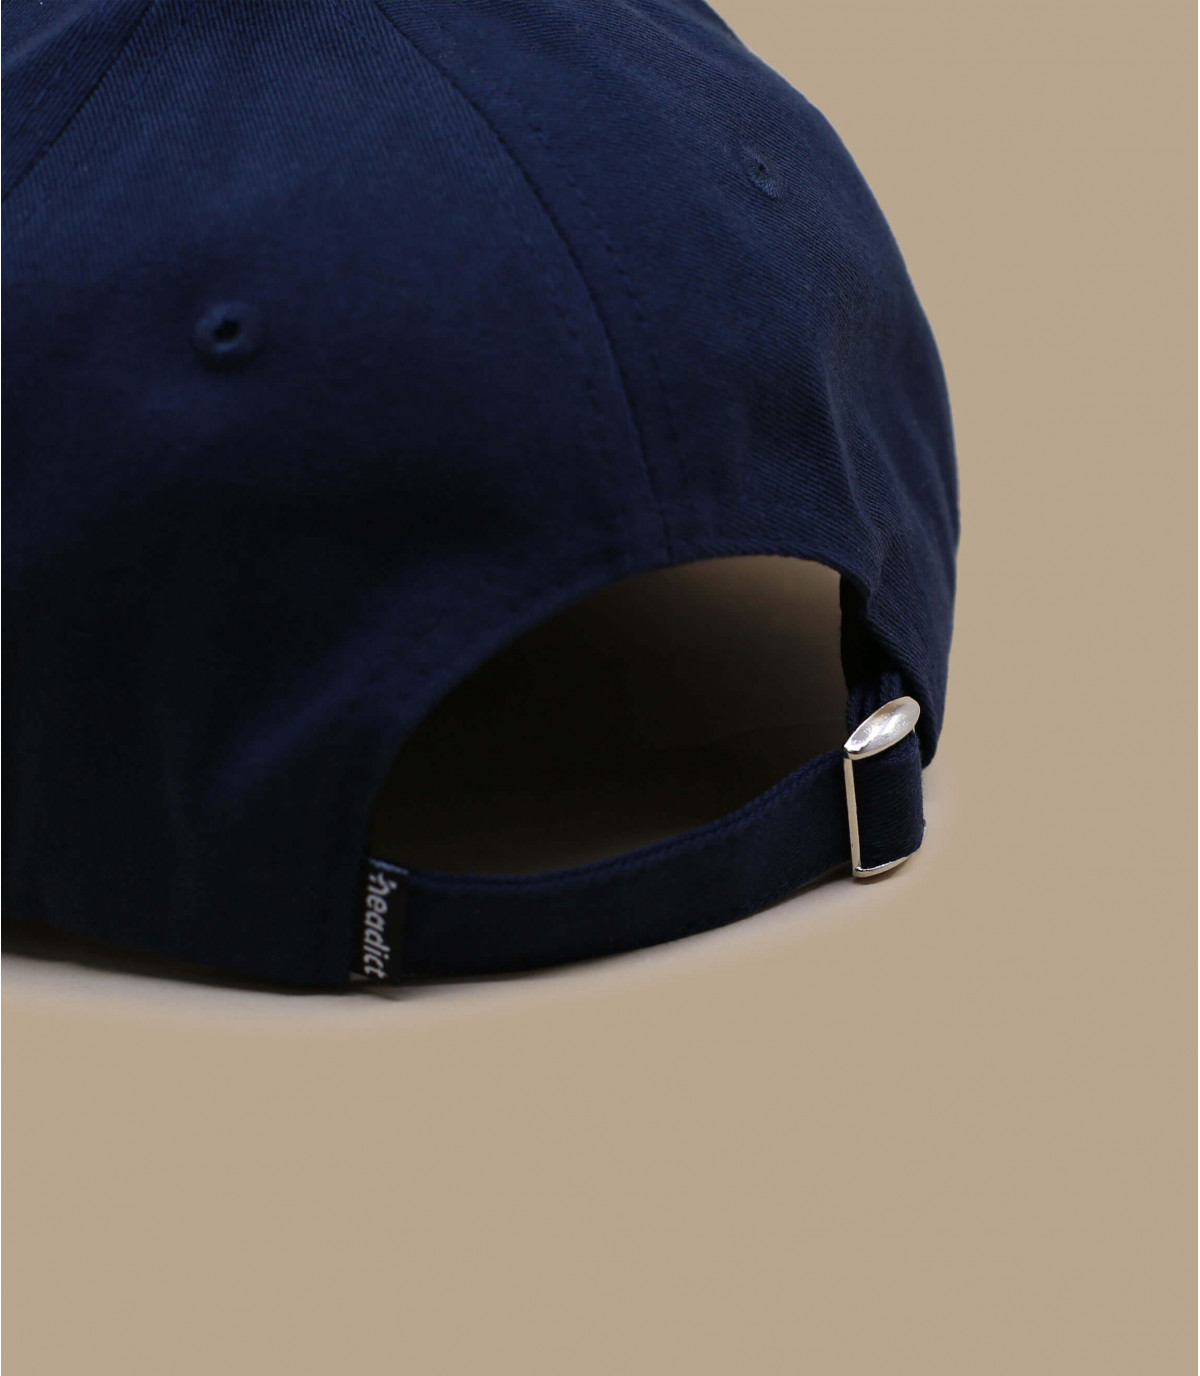 Details Curve King of the North navy brown - Abbildung 4